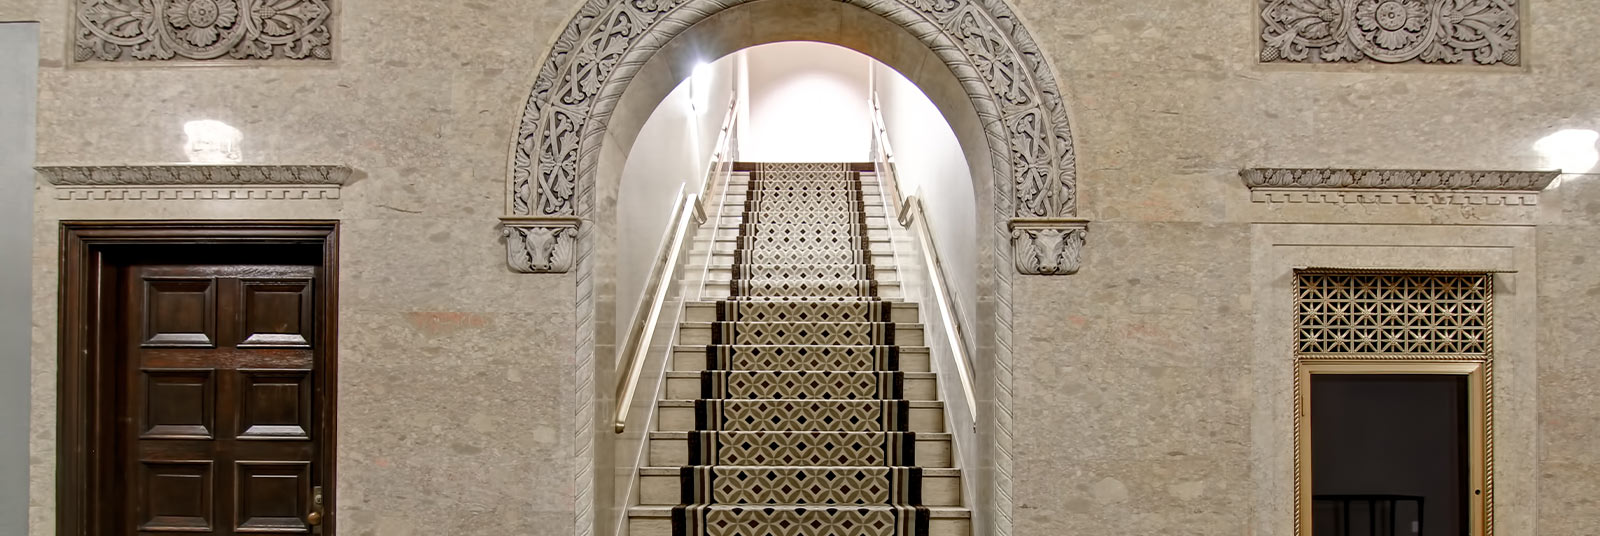 Historic architecture and interior design in the the Homewood Suites and Hampton Inn hotels at the Cincinnati Enquirer building in downtown Cincinnati, Ohio.